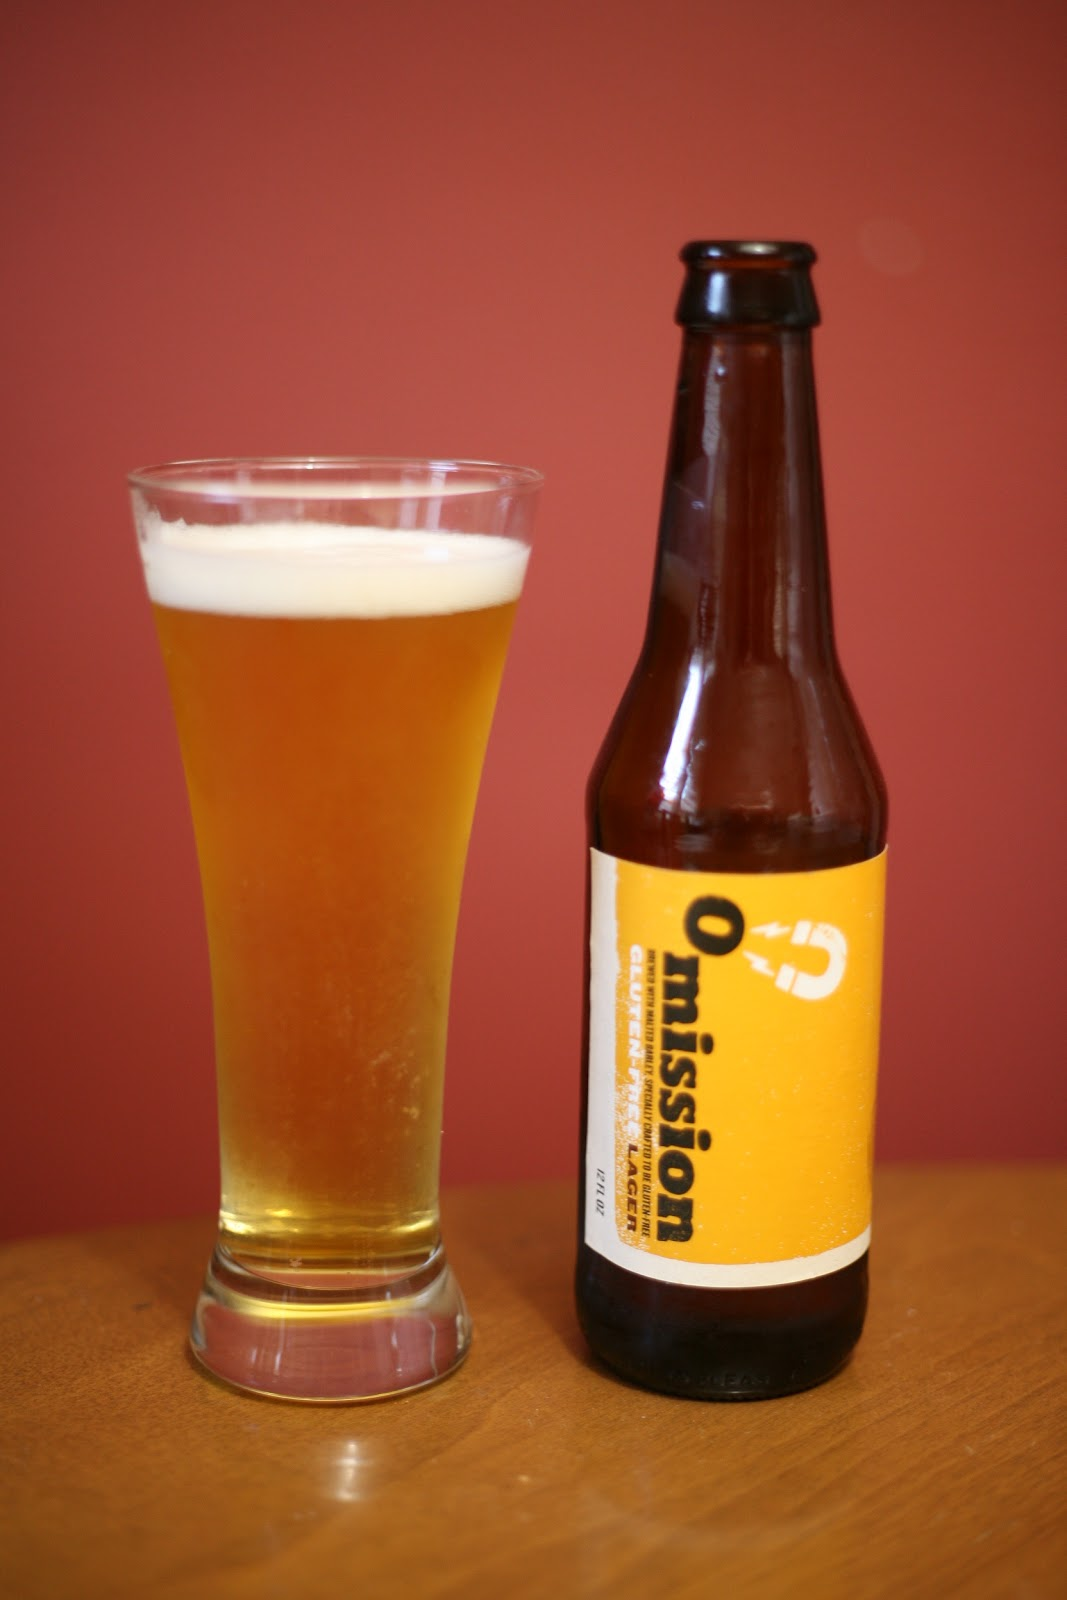 gluten-free gourmand: beer guide - a list of 16 gluten-free beers